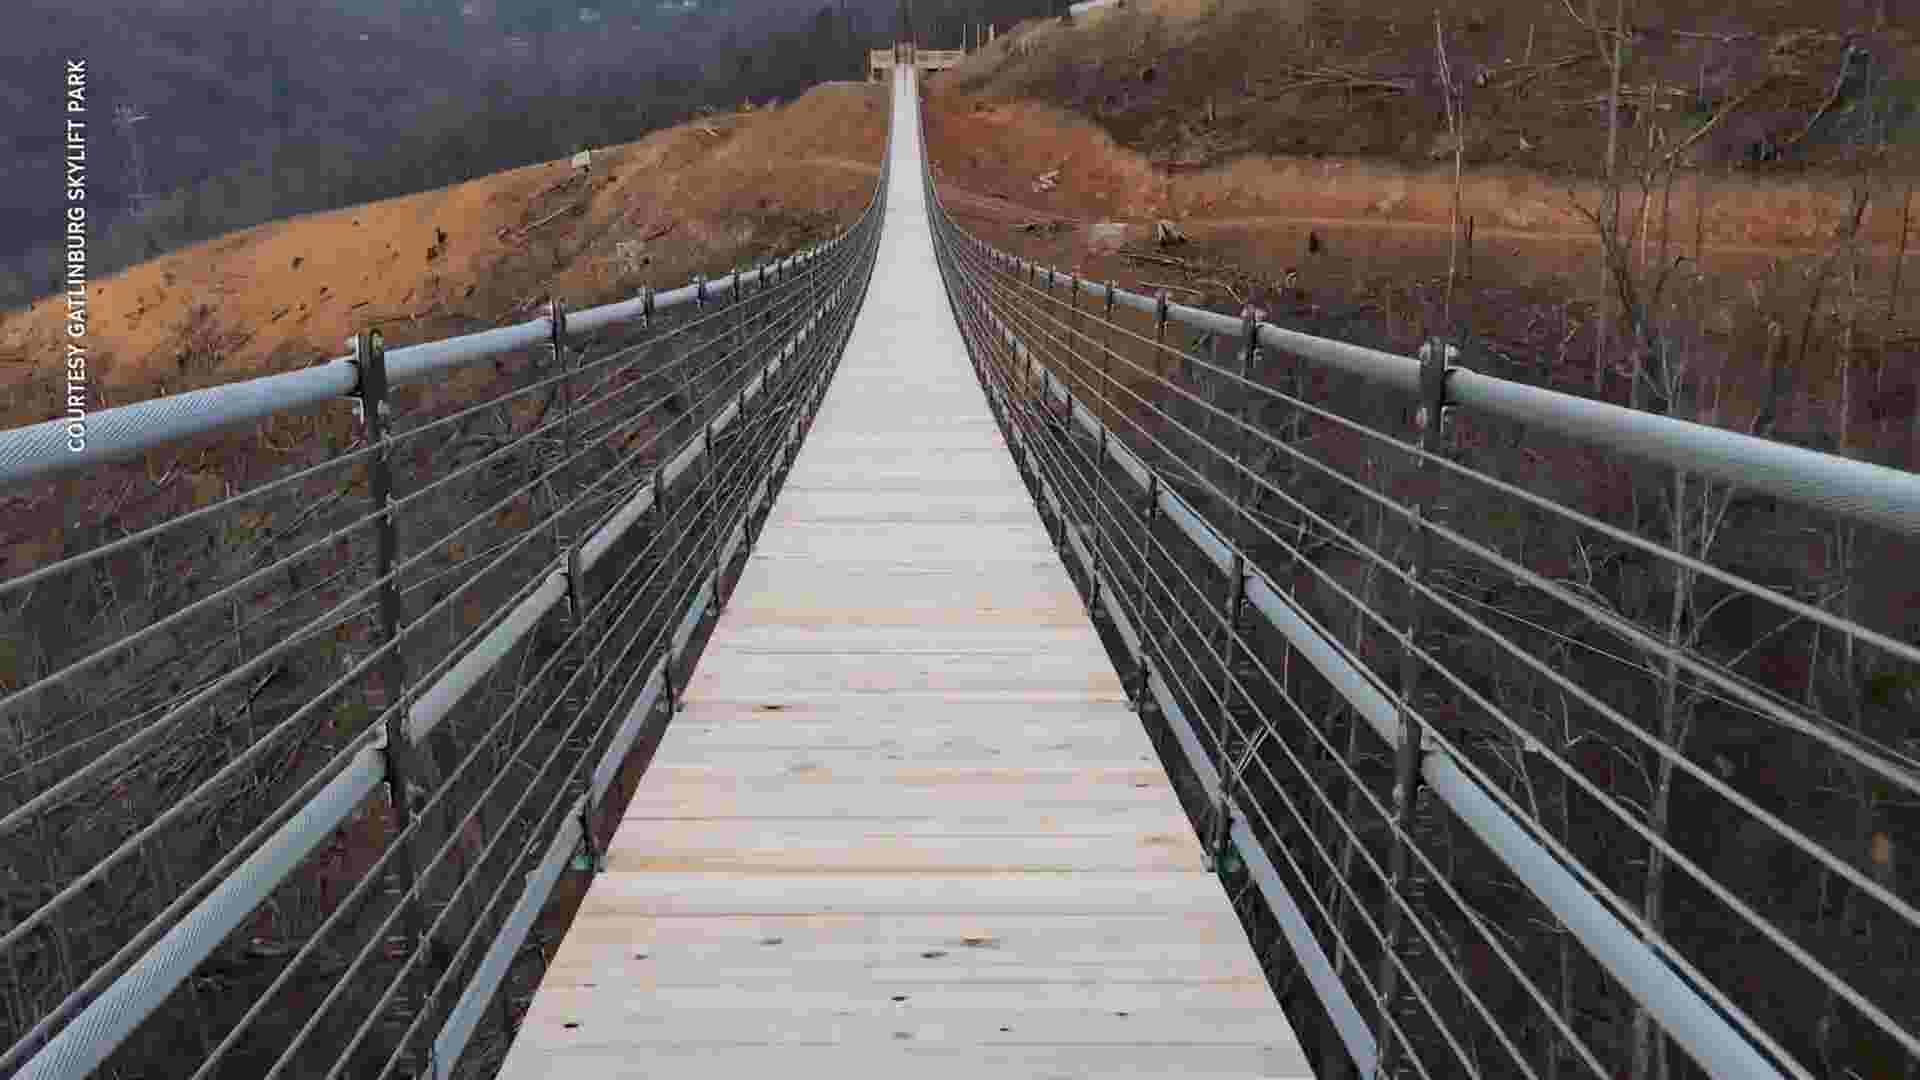 Insanely long pedestrian bridge opens in Tennessee